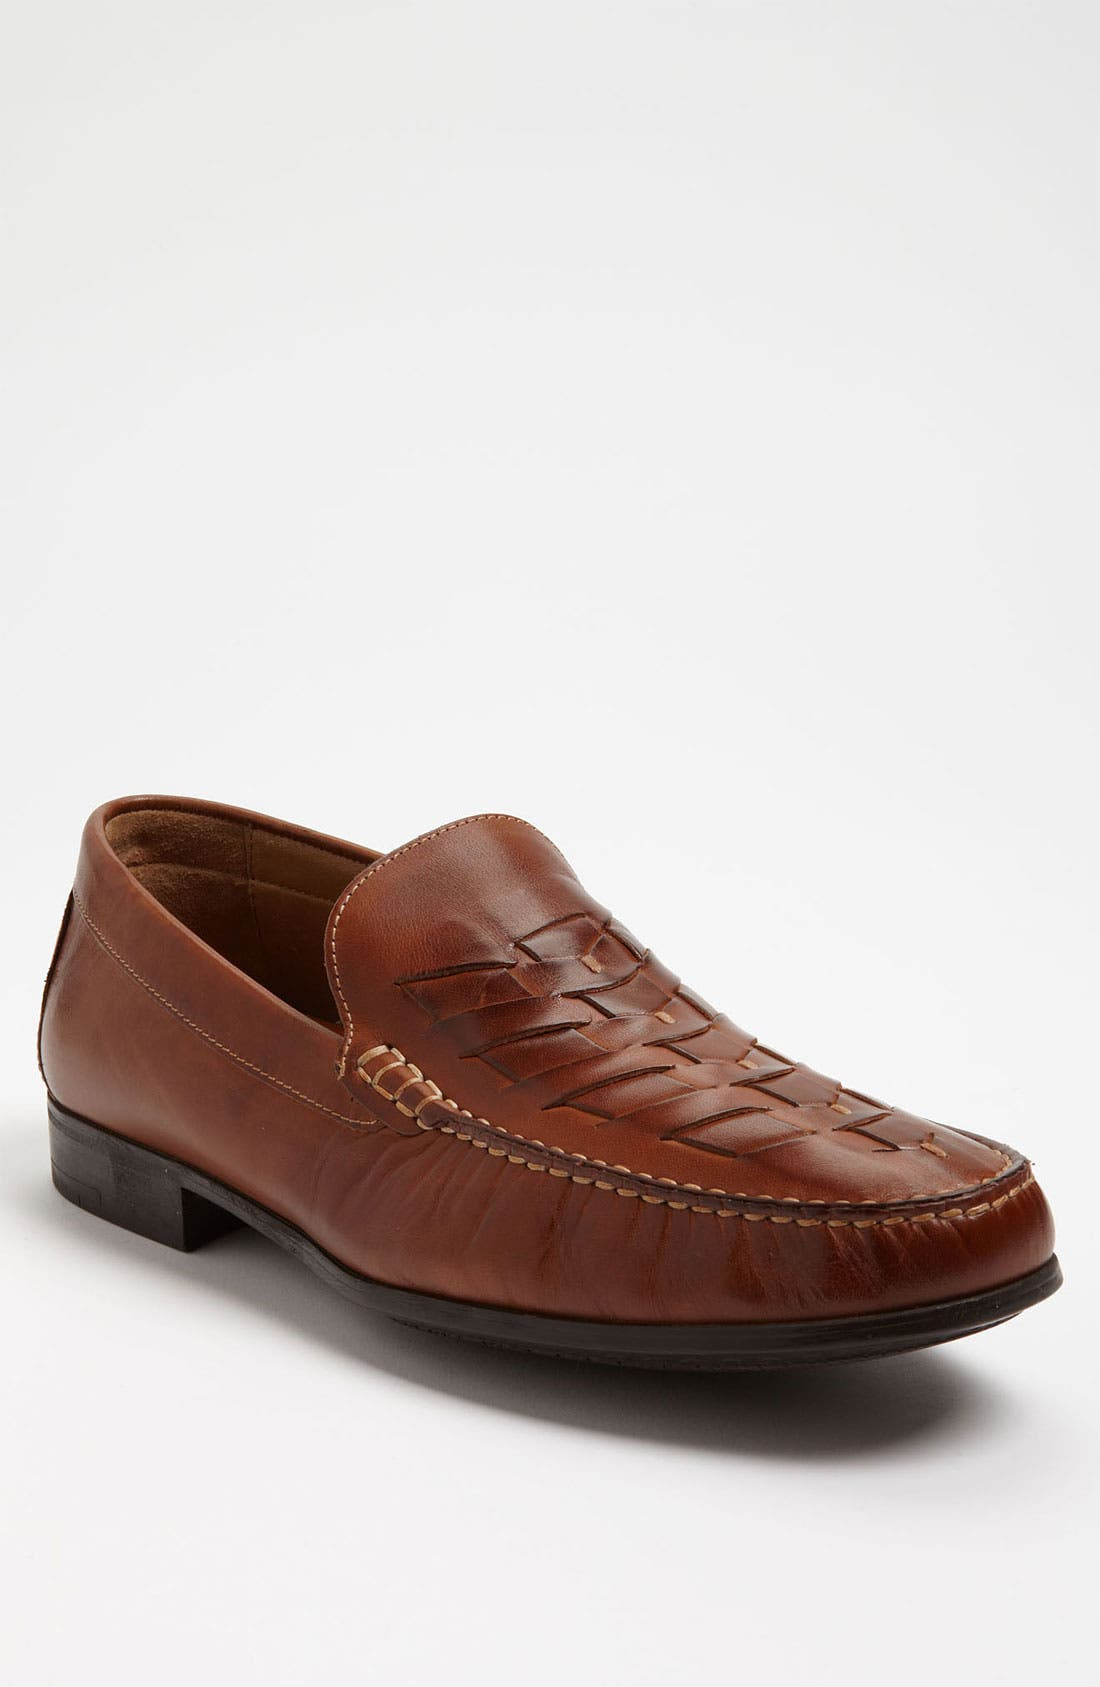 Alternate Image 1 Selected - Johnston & Murphy 'Cresswell' Loafer (Online Only)